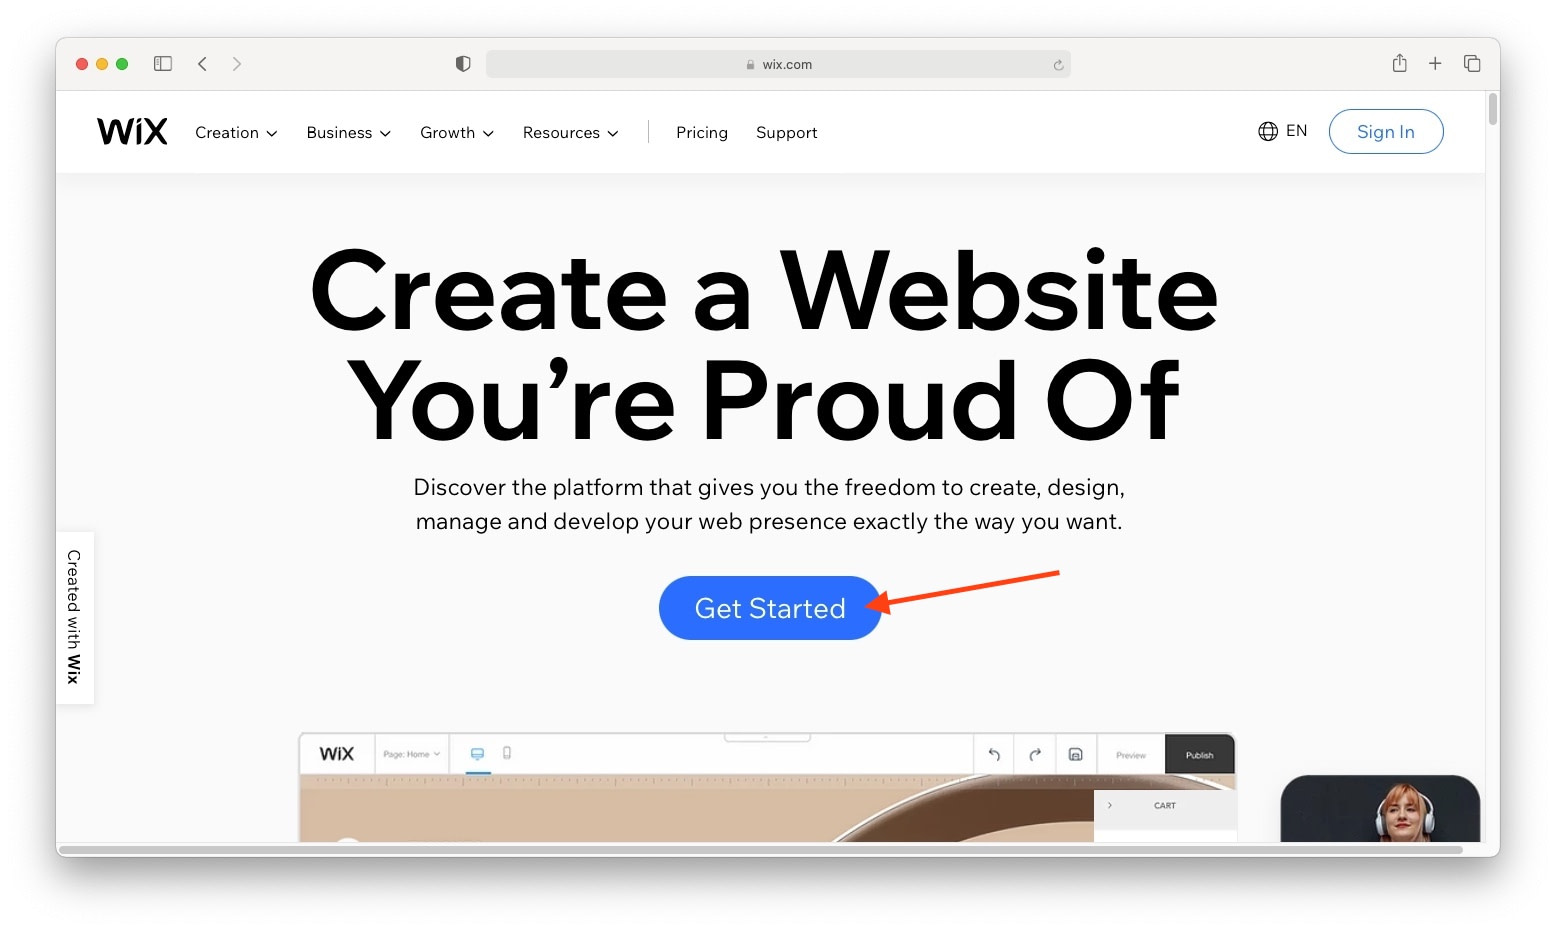 This Wix tutorial starts with the Get Started page